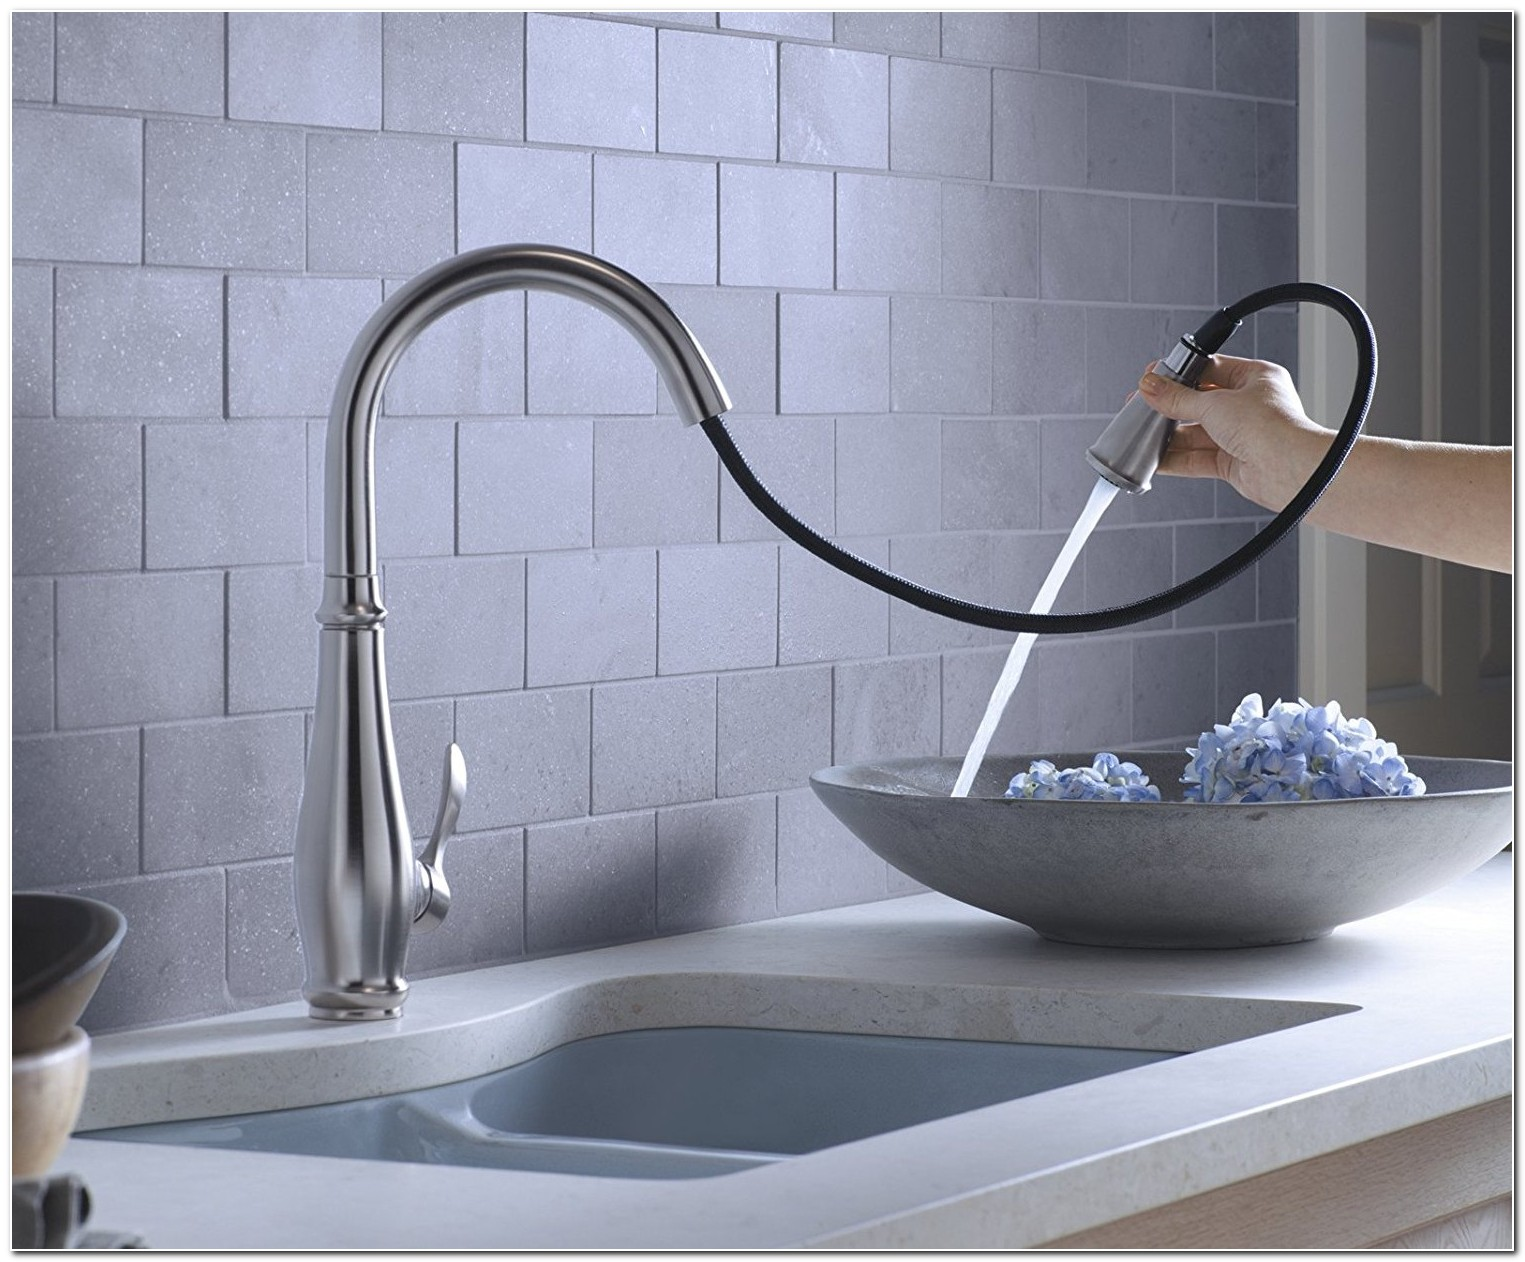 Highest Rated Kitchen Faucets 2014